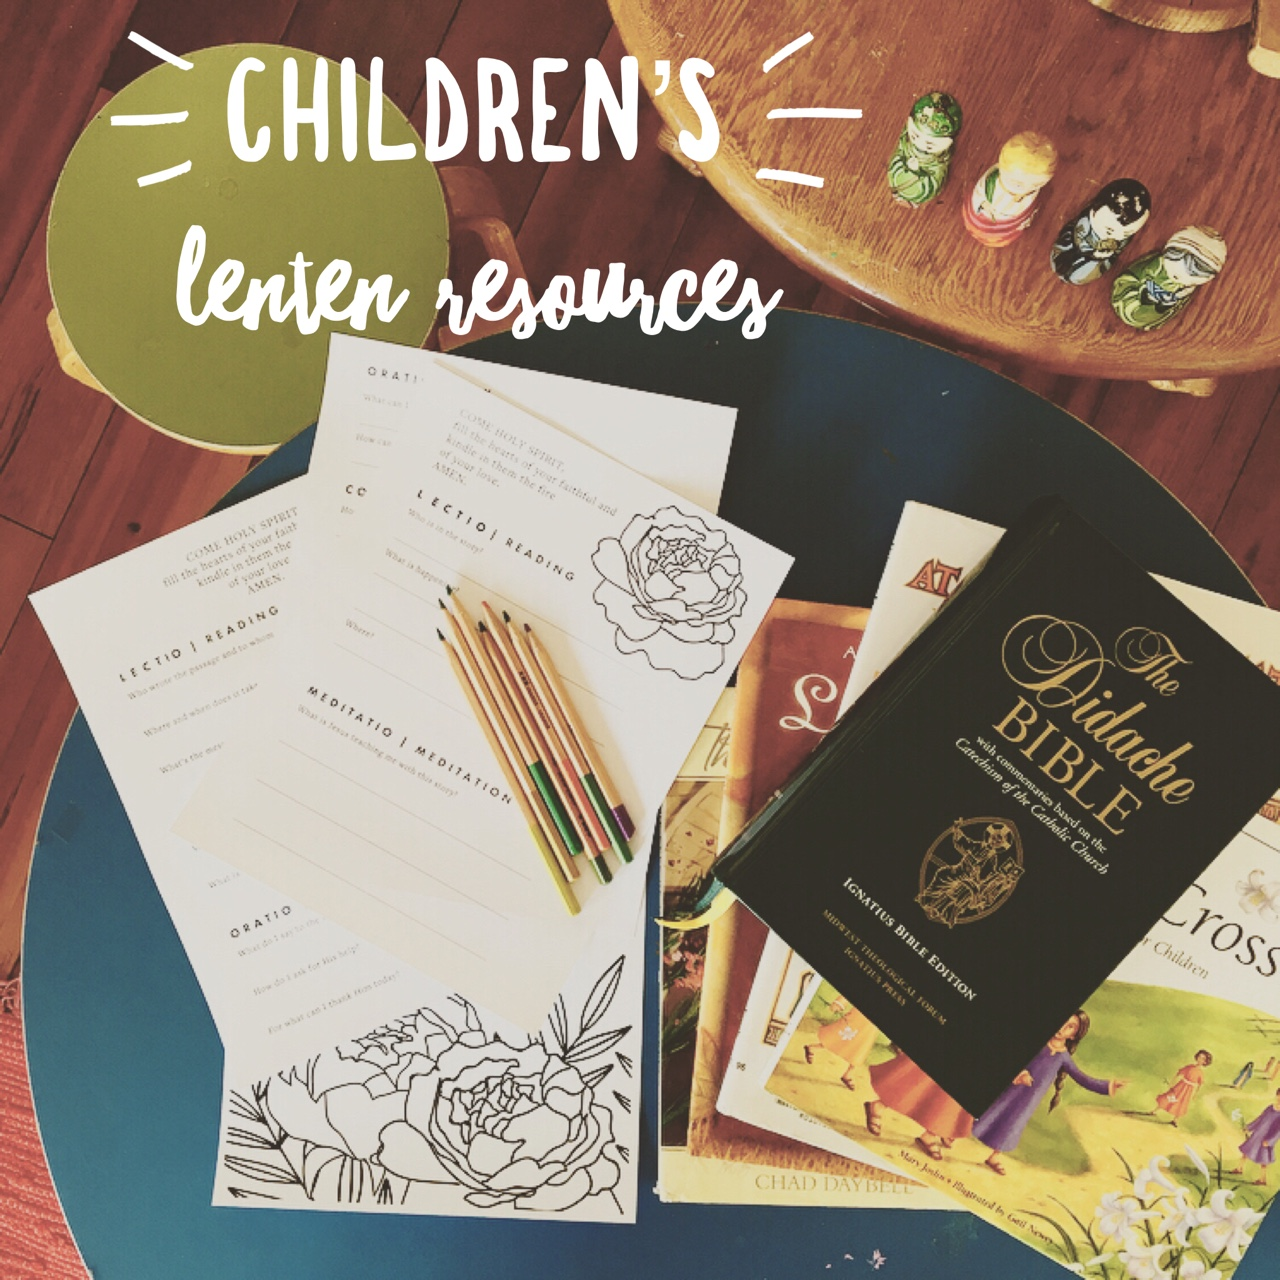 Lenten Resources for Children - We love digging into the Word with our children beside us and we hope these tools help you to do that with your children this Lent